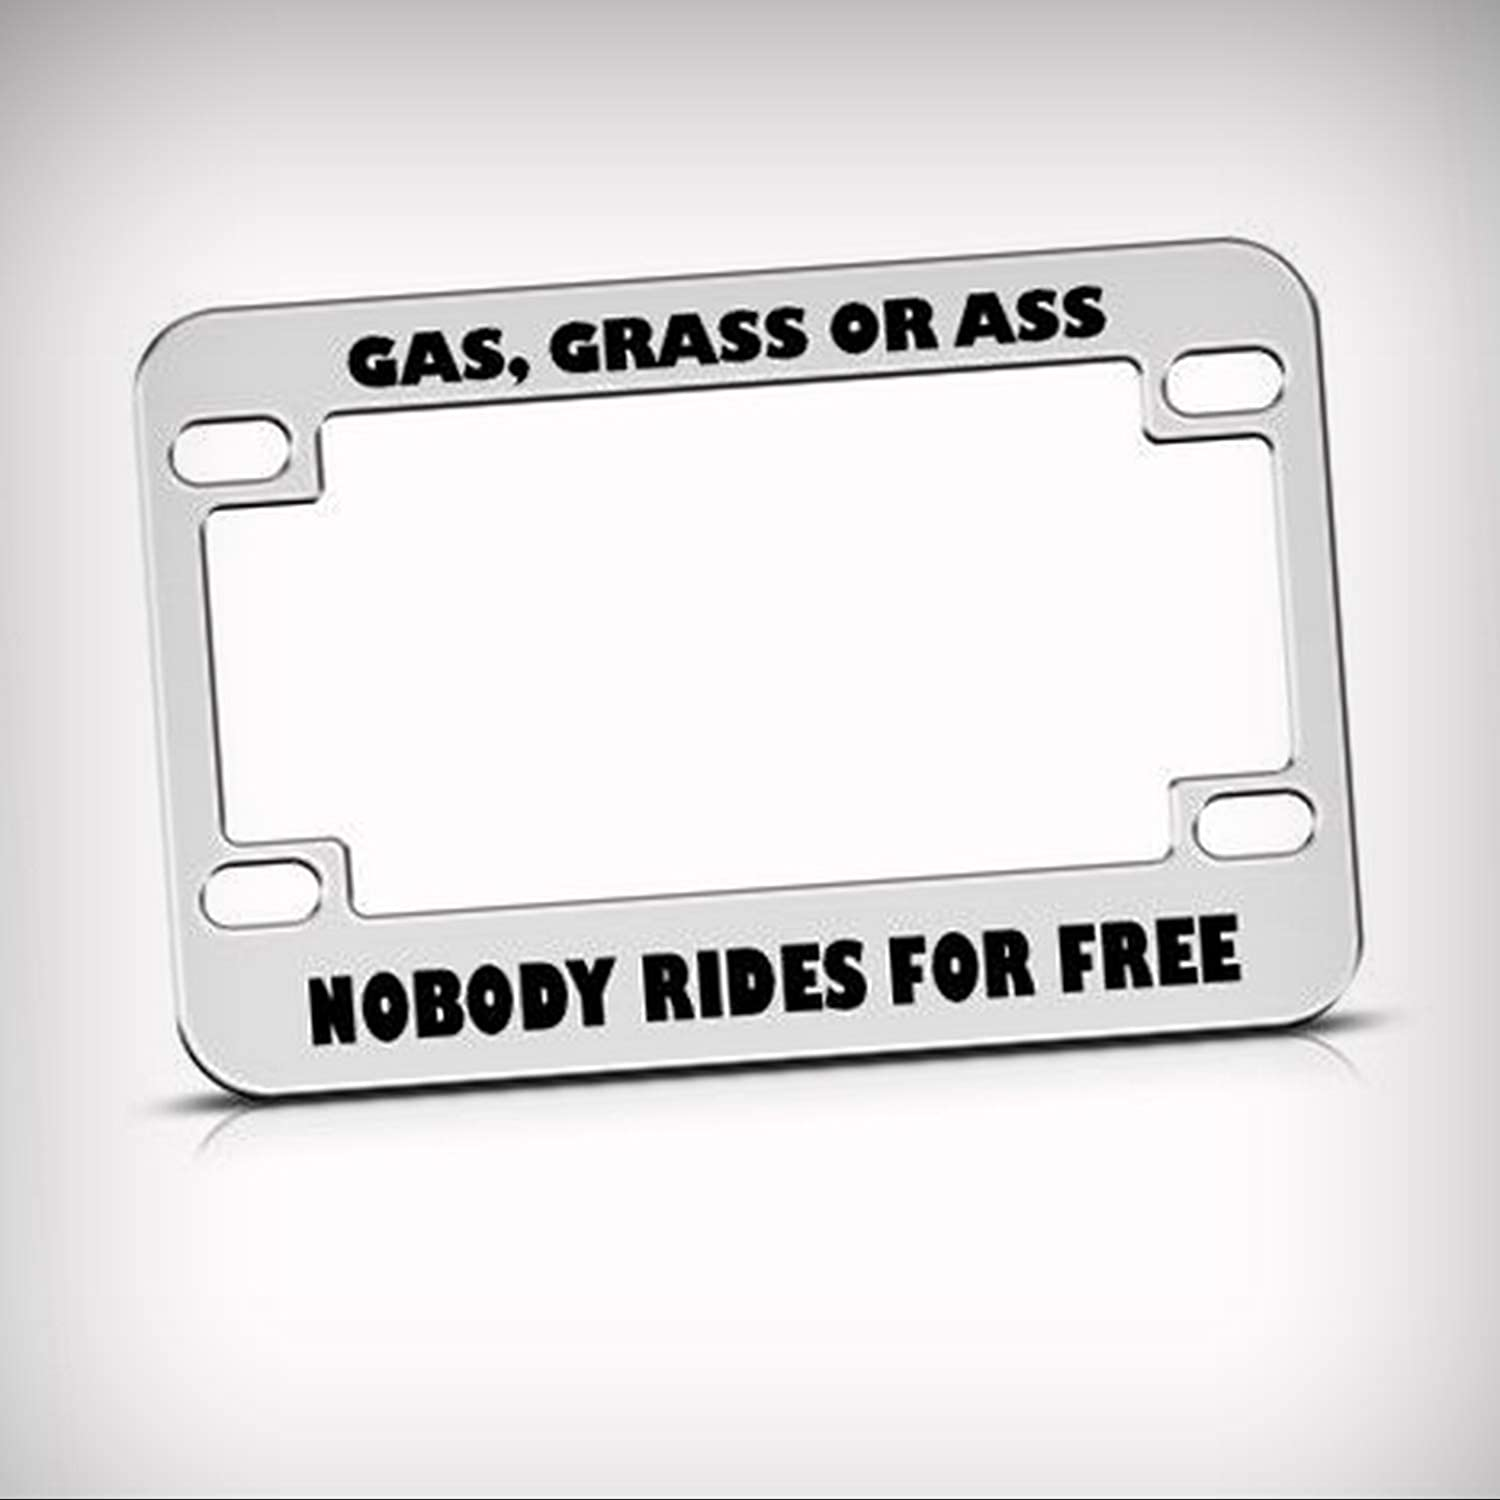 Gas grass ass nobody rides free metal bike motorcycle tag holder license plate frame decorative border novelty plate sign for home garage office decor